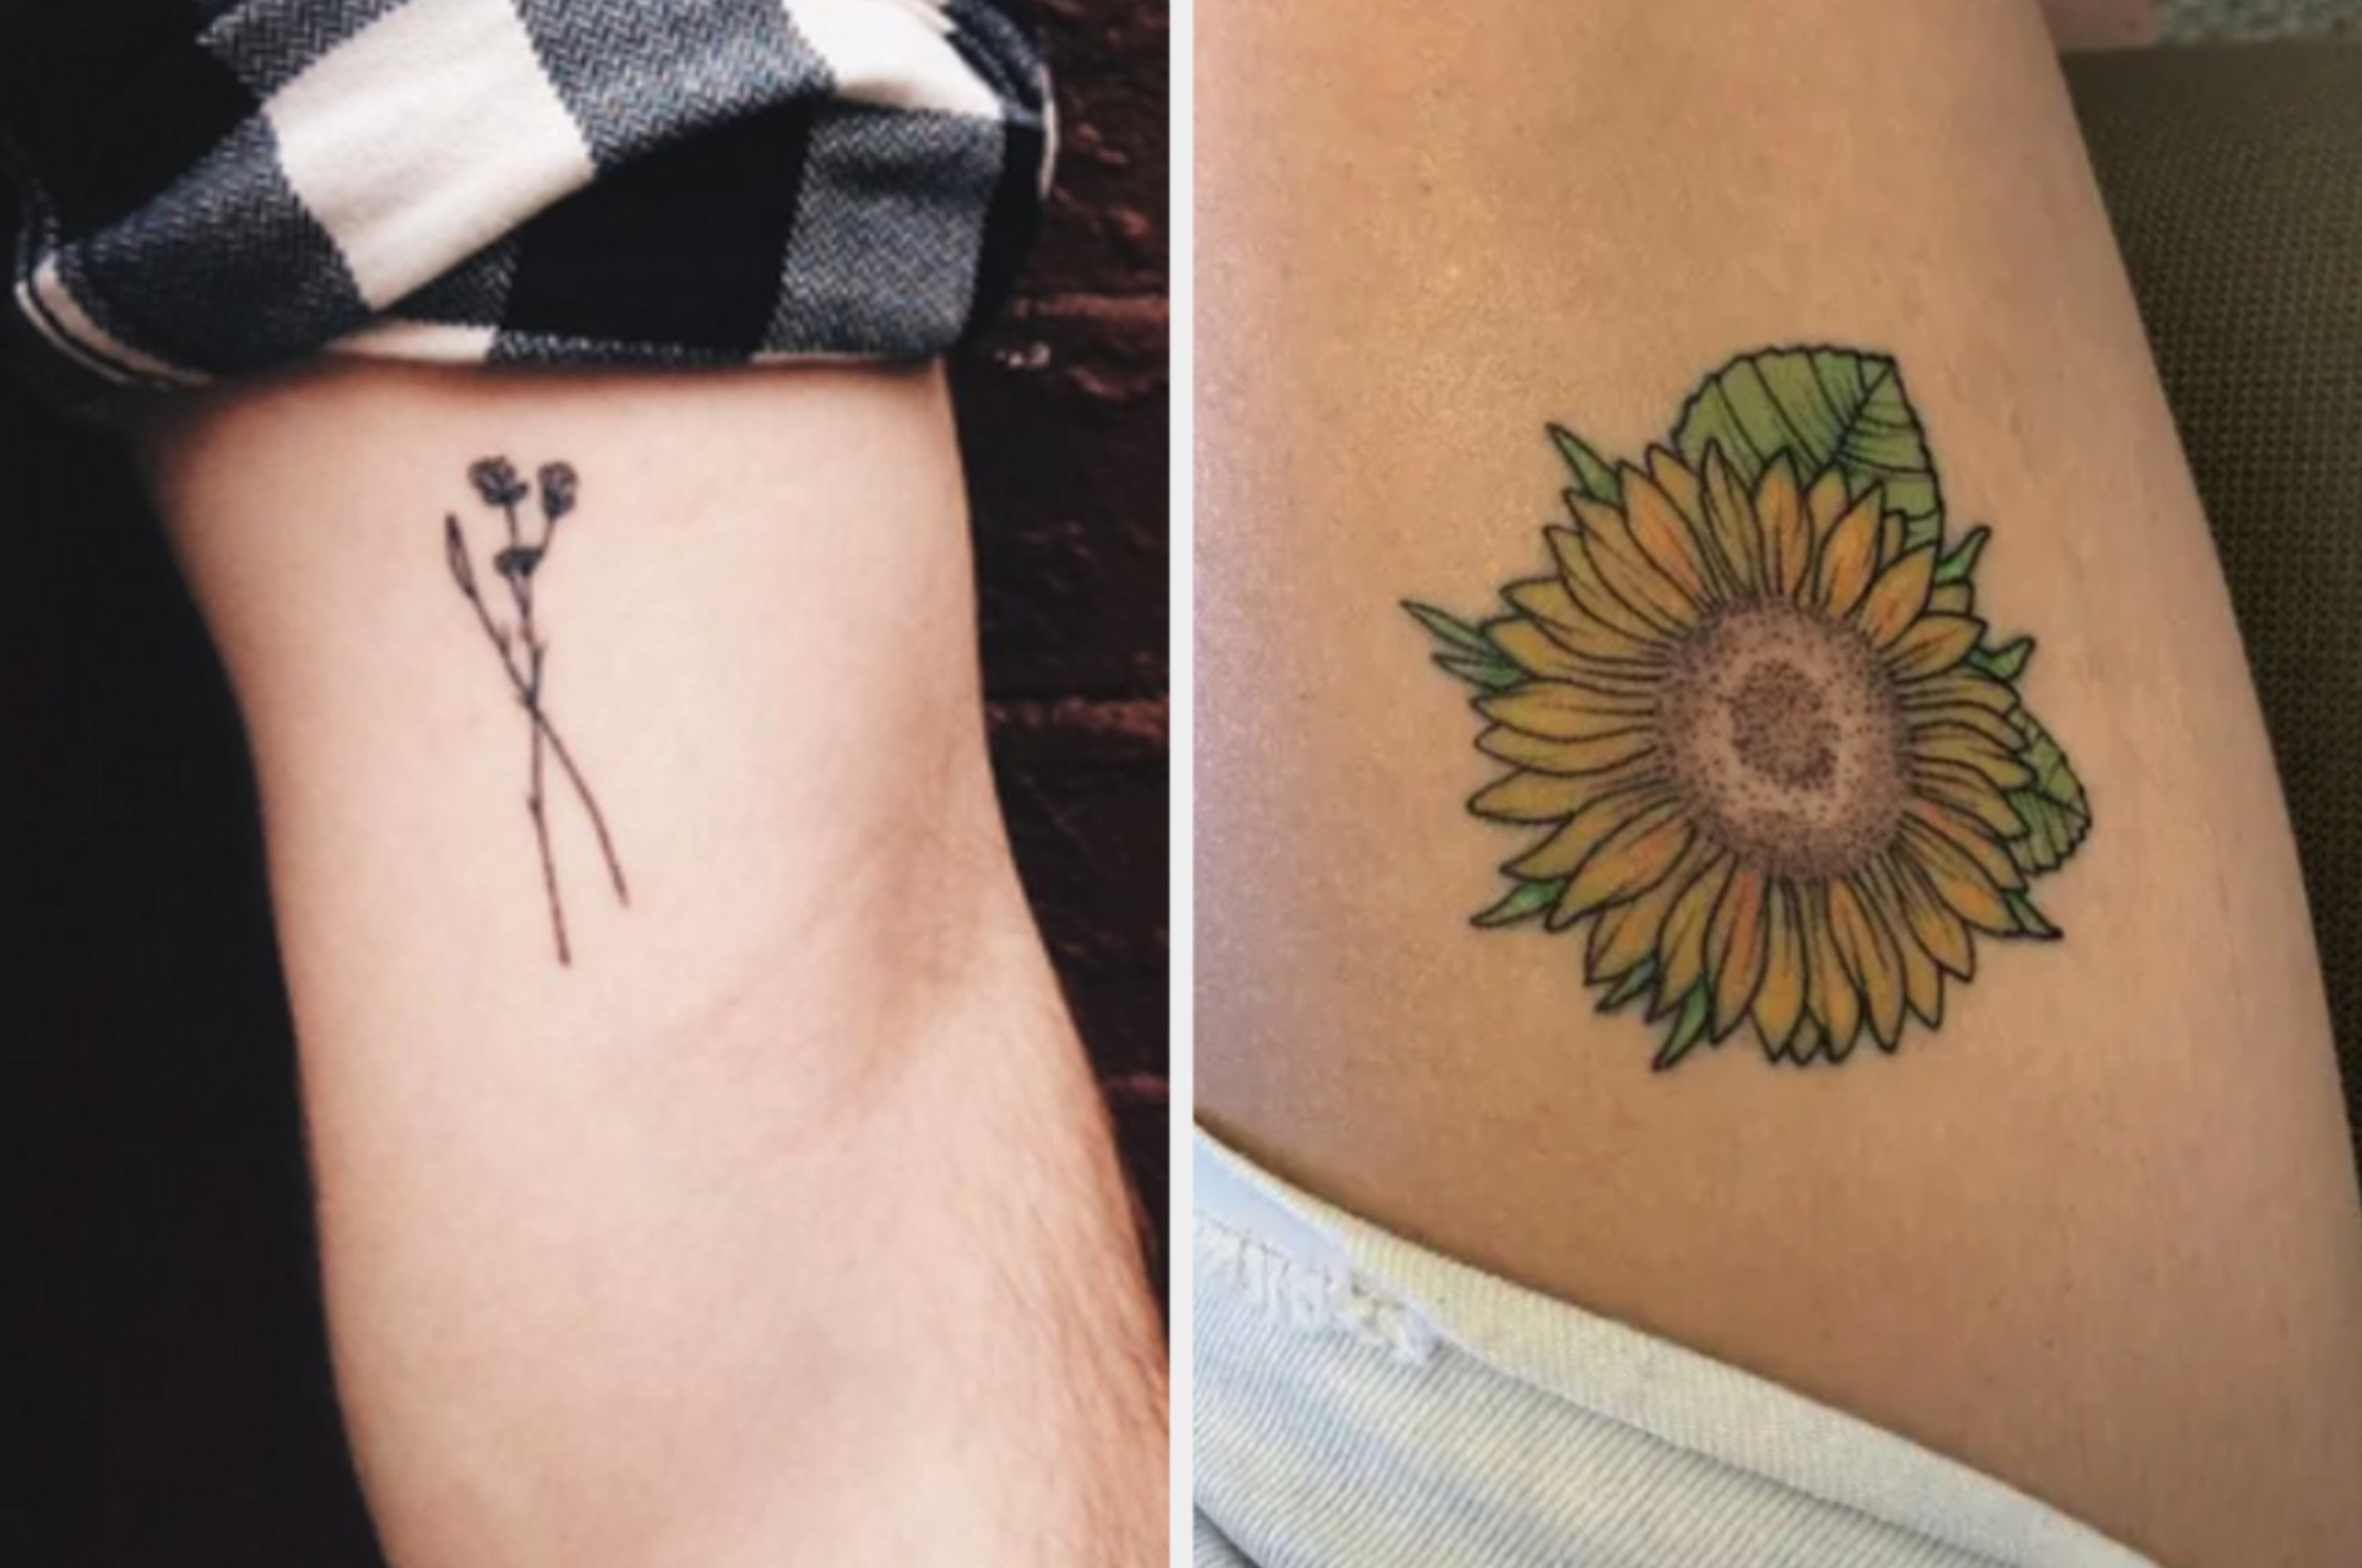 Simple flower design and sunflower colorful design